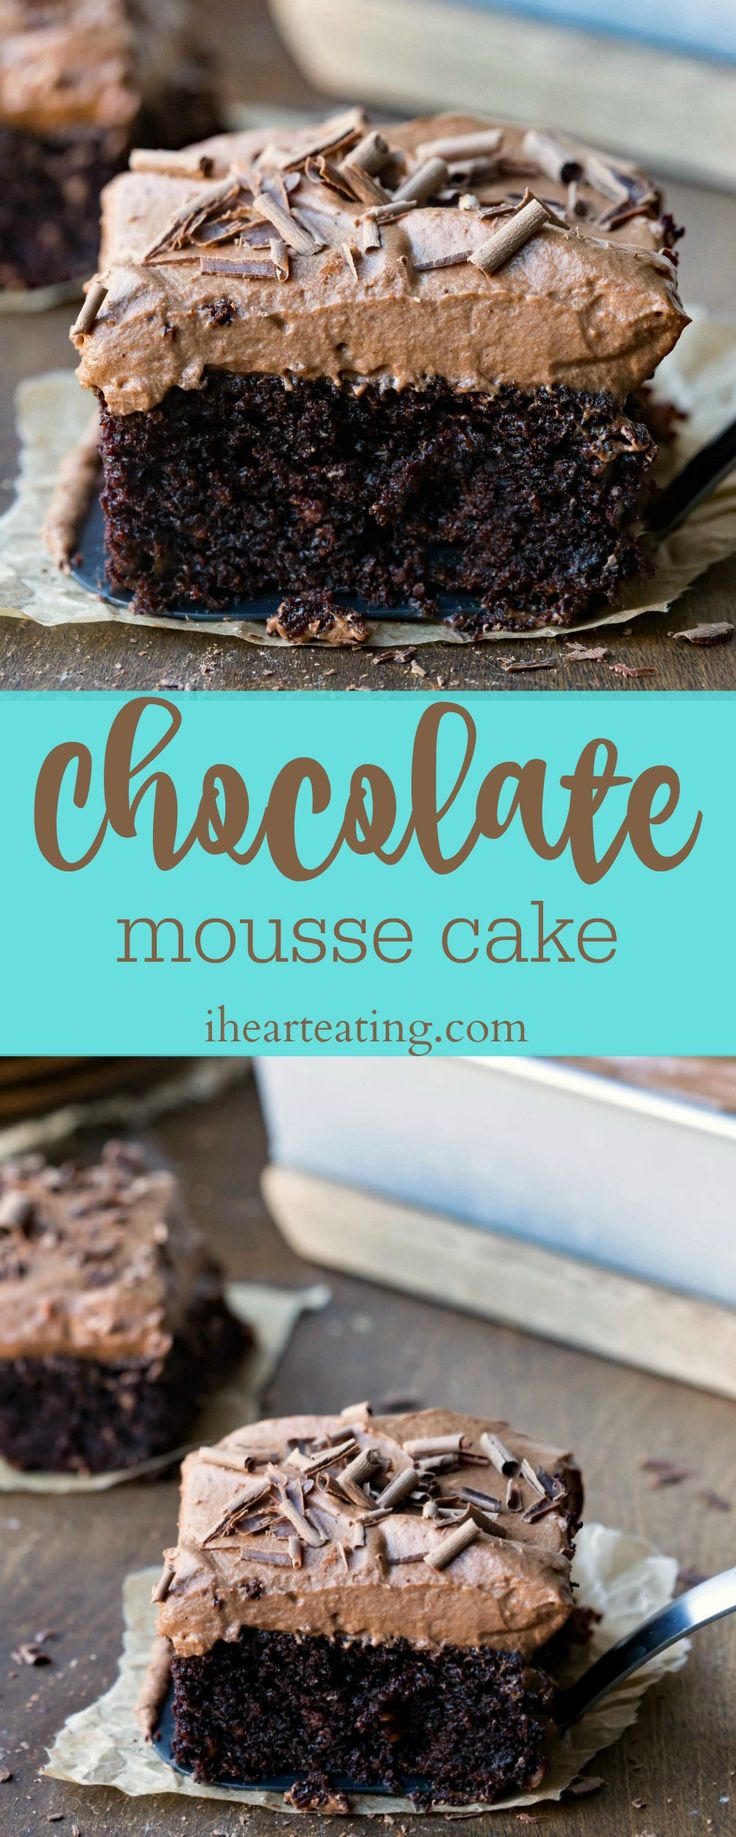 21036 best * Chocolate Dessert Recipes * images on Pinterest ...